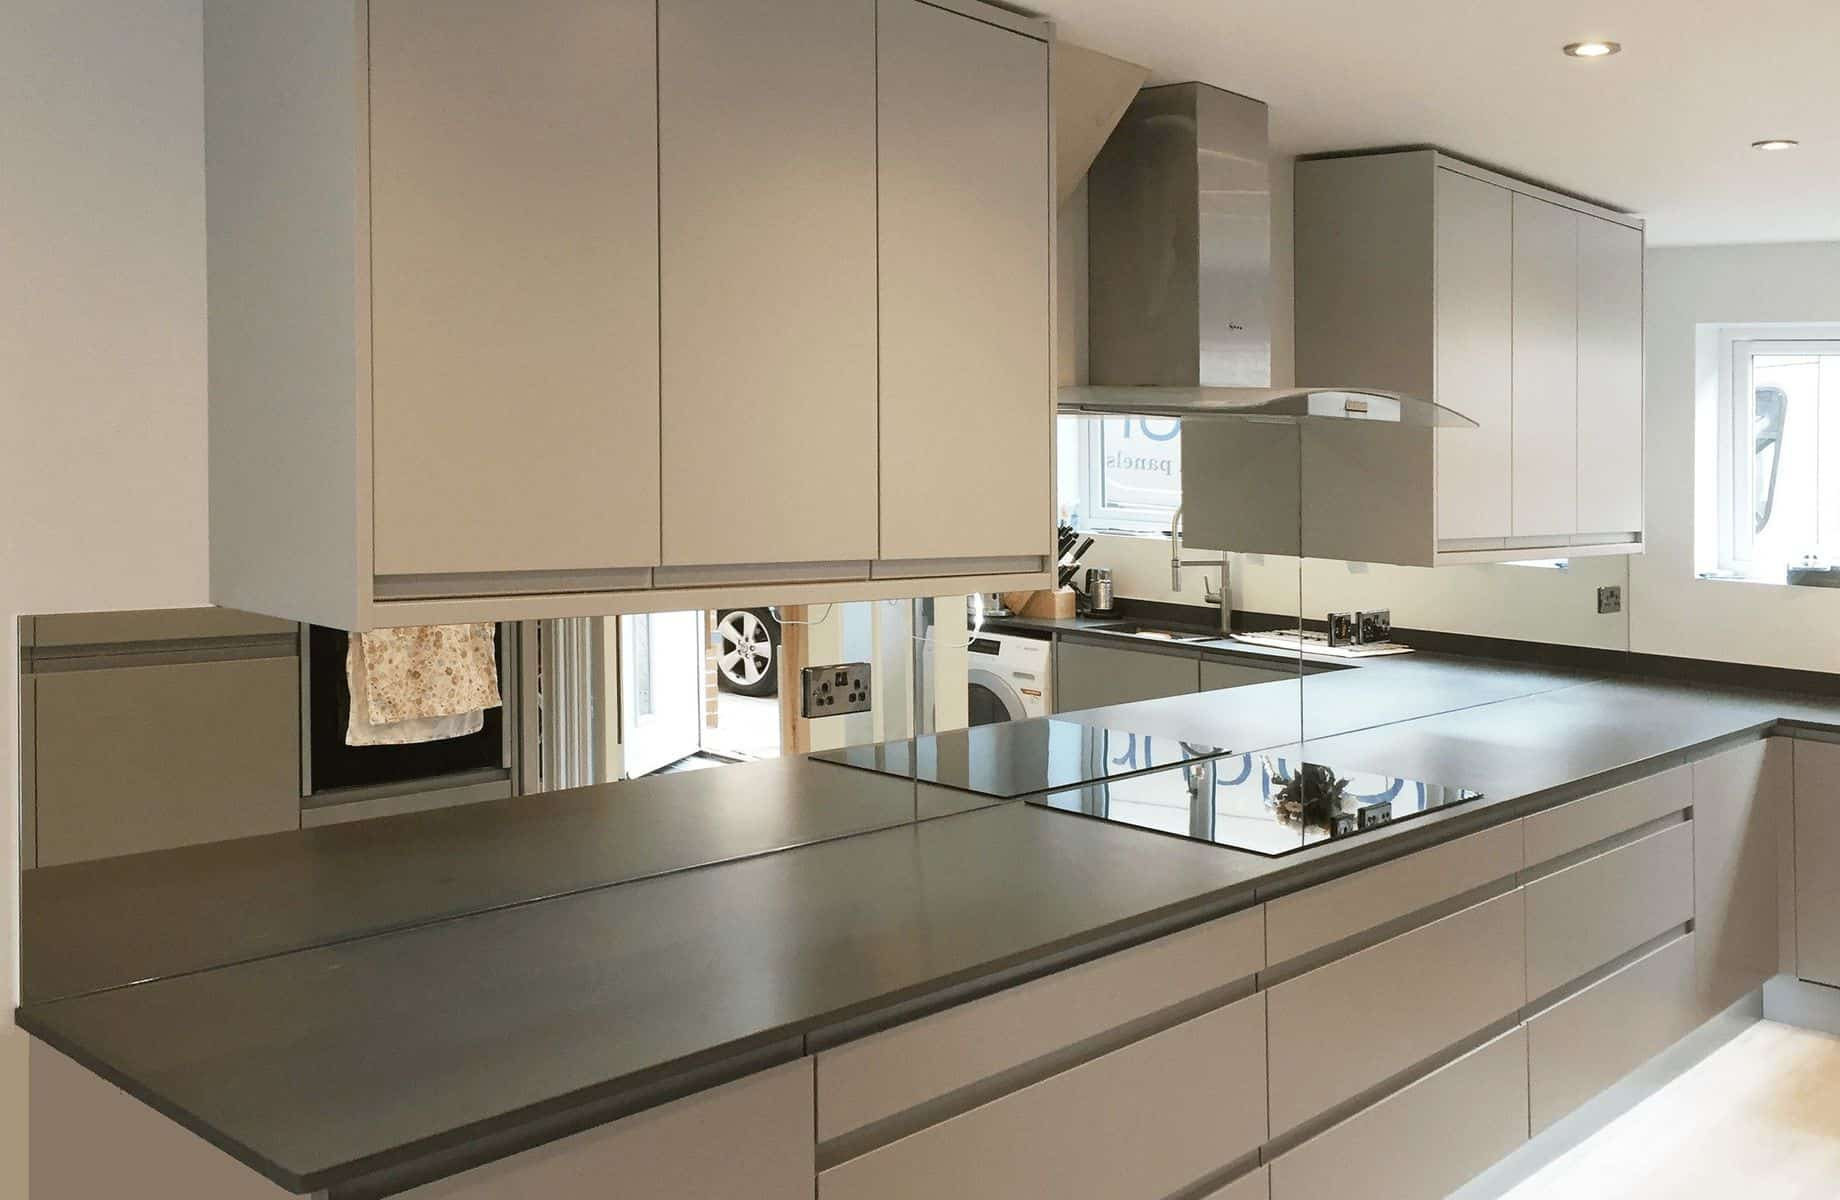 Mirror glass splashbacks in Silver Mirror produced for Nailsea Electrical